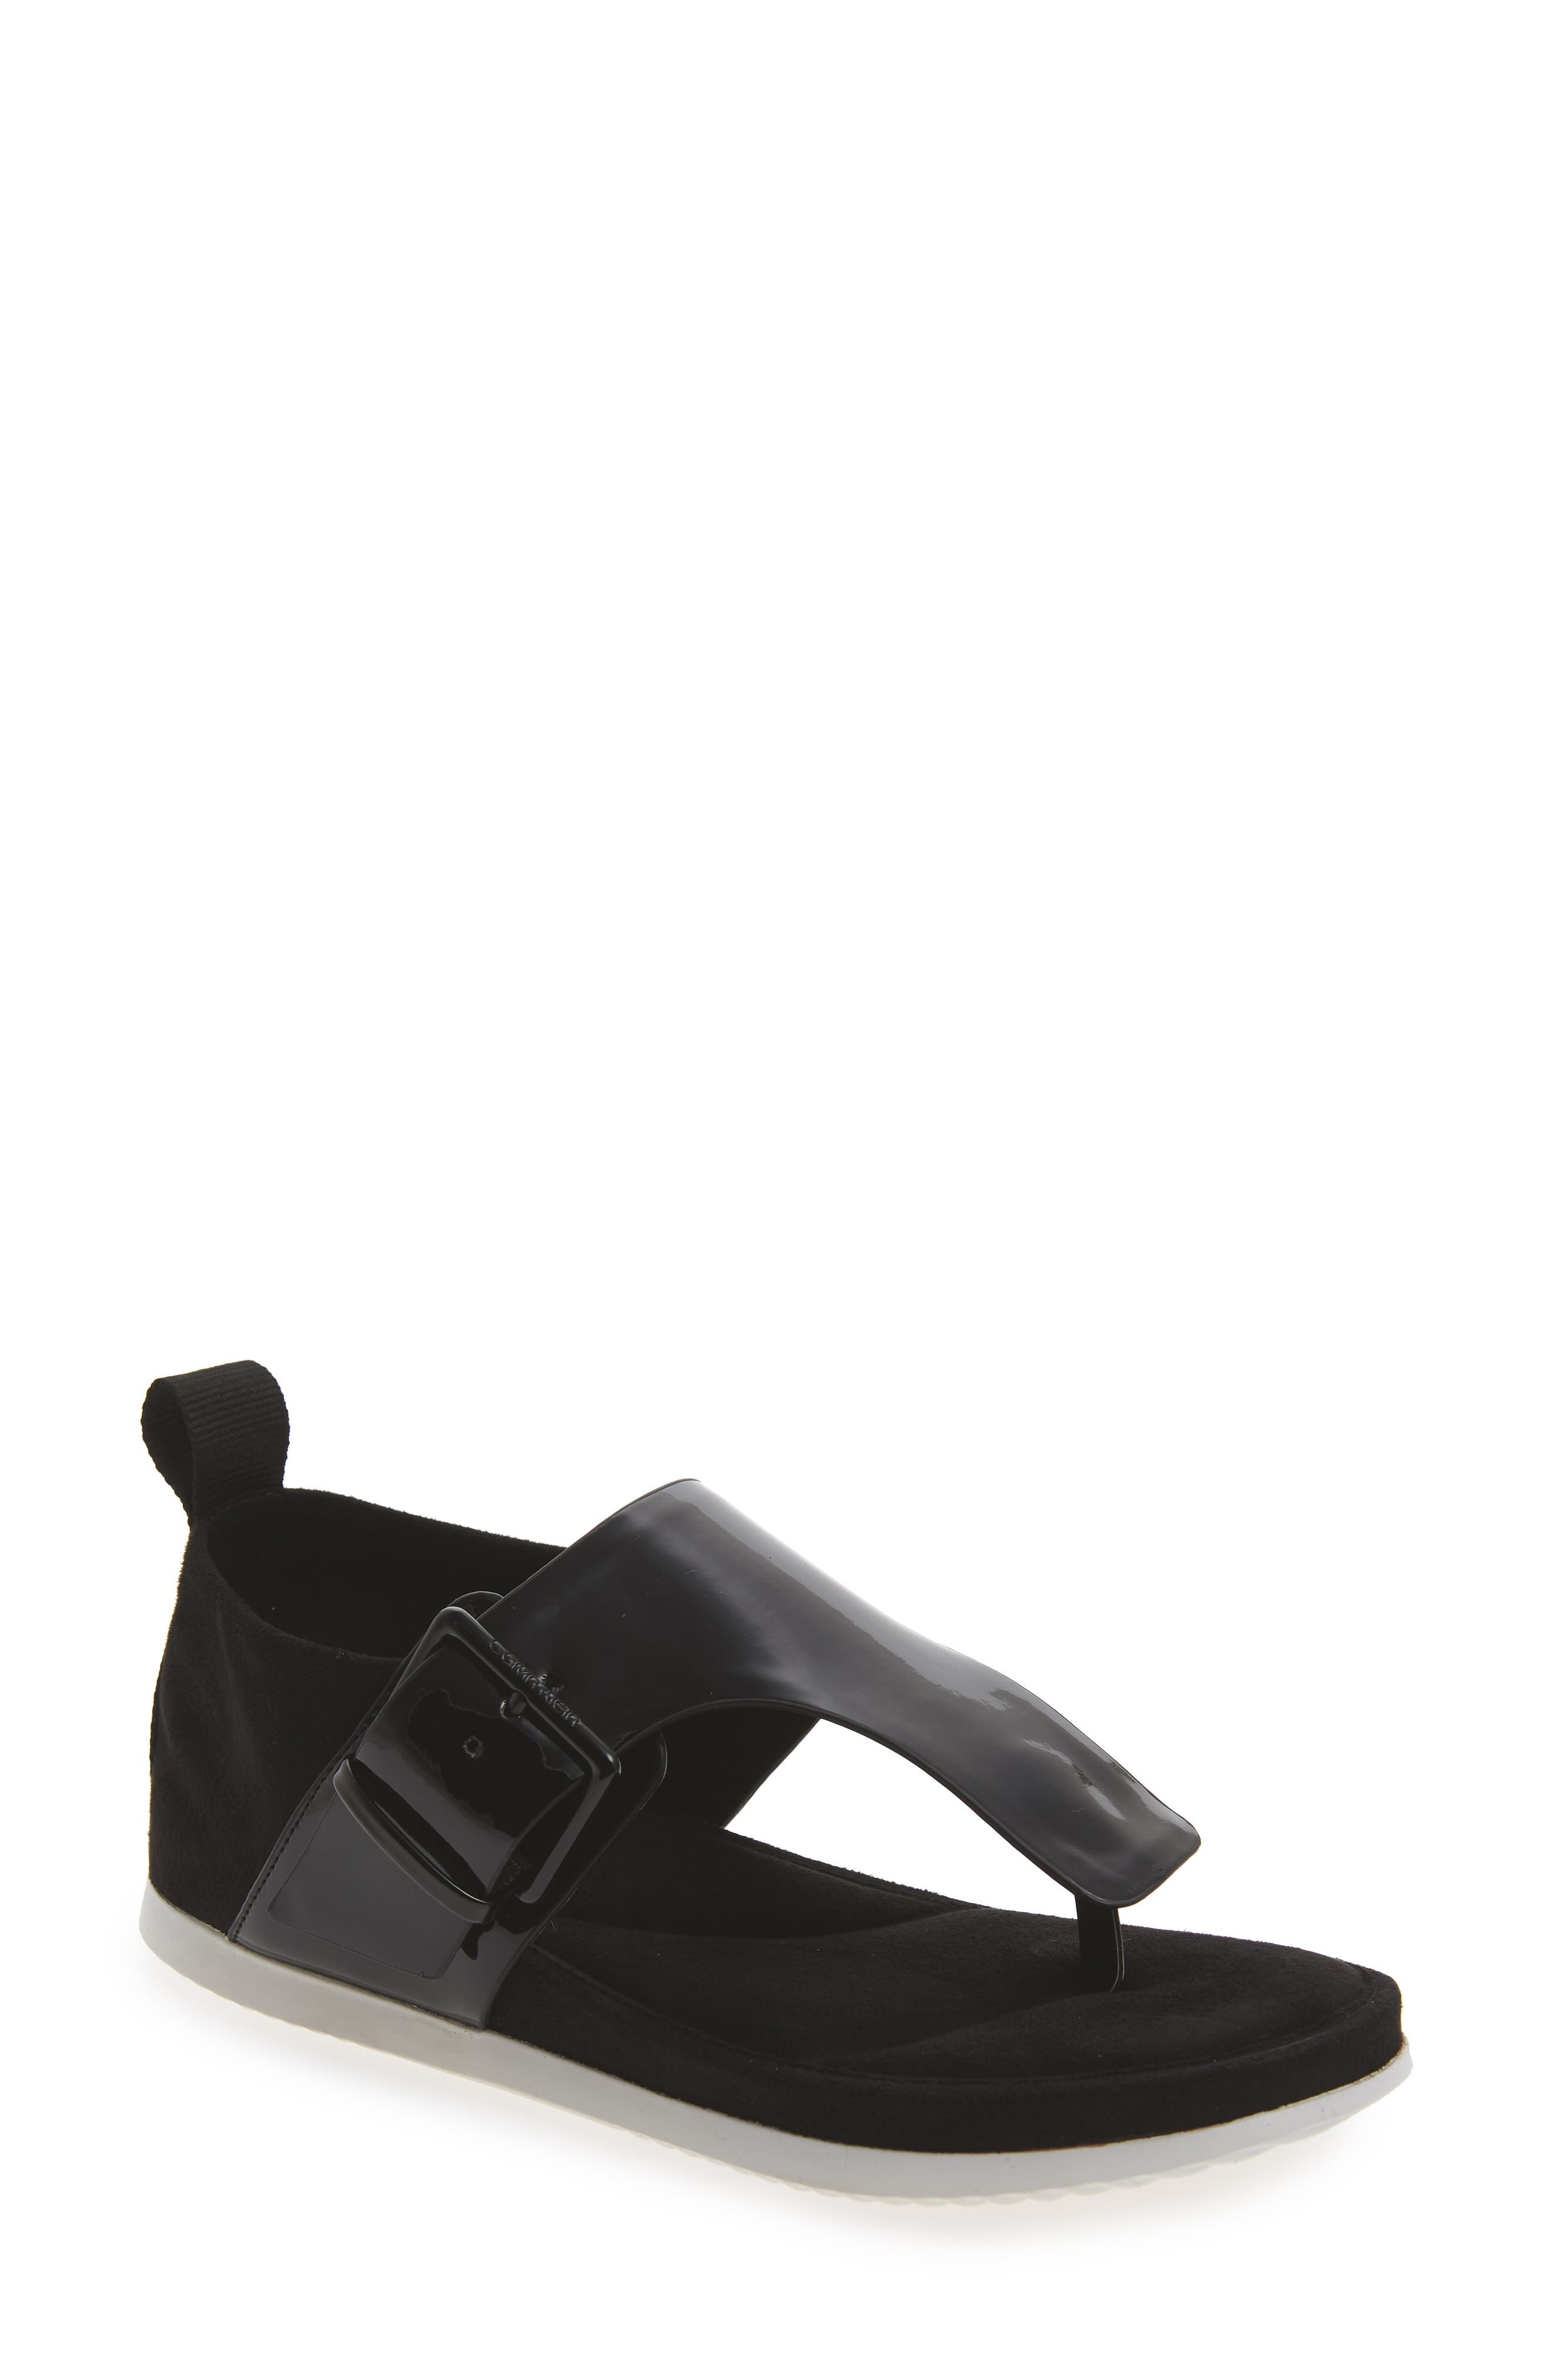 Dionay Wedge Sandal,                         Main,                         color, 001